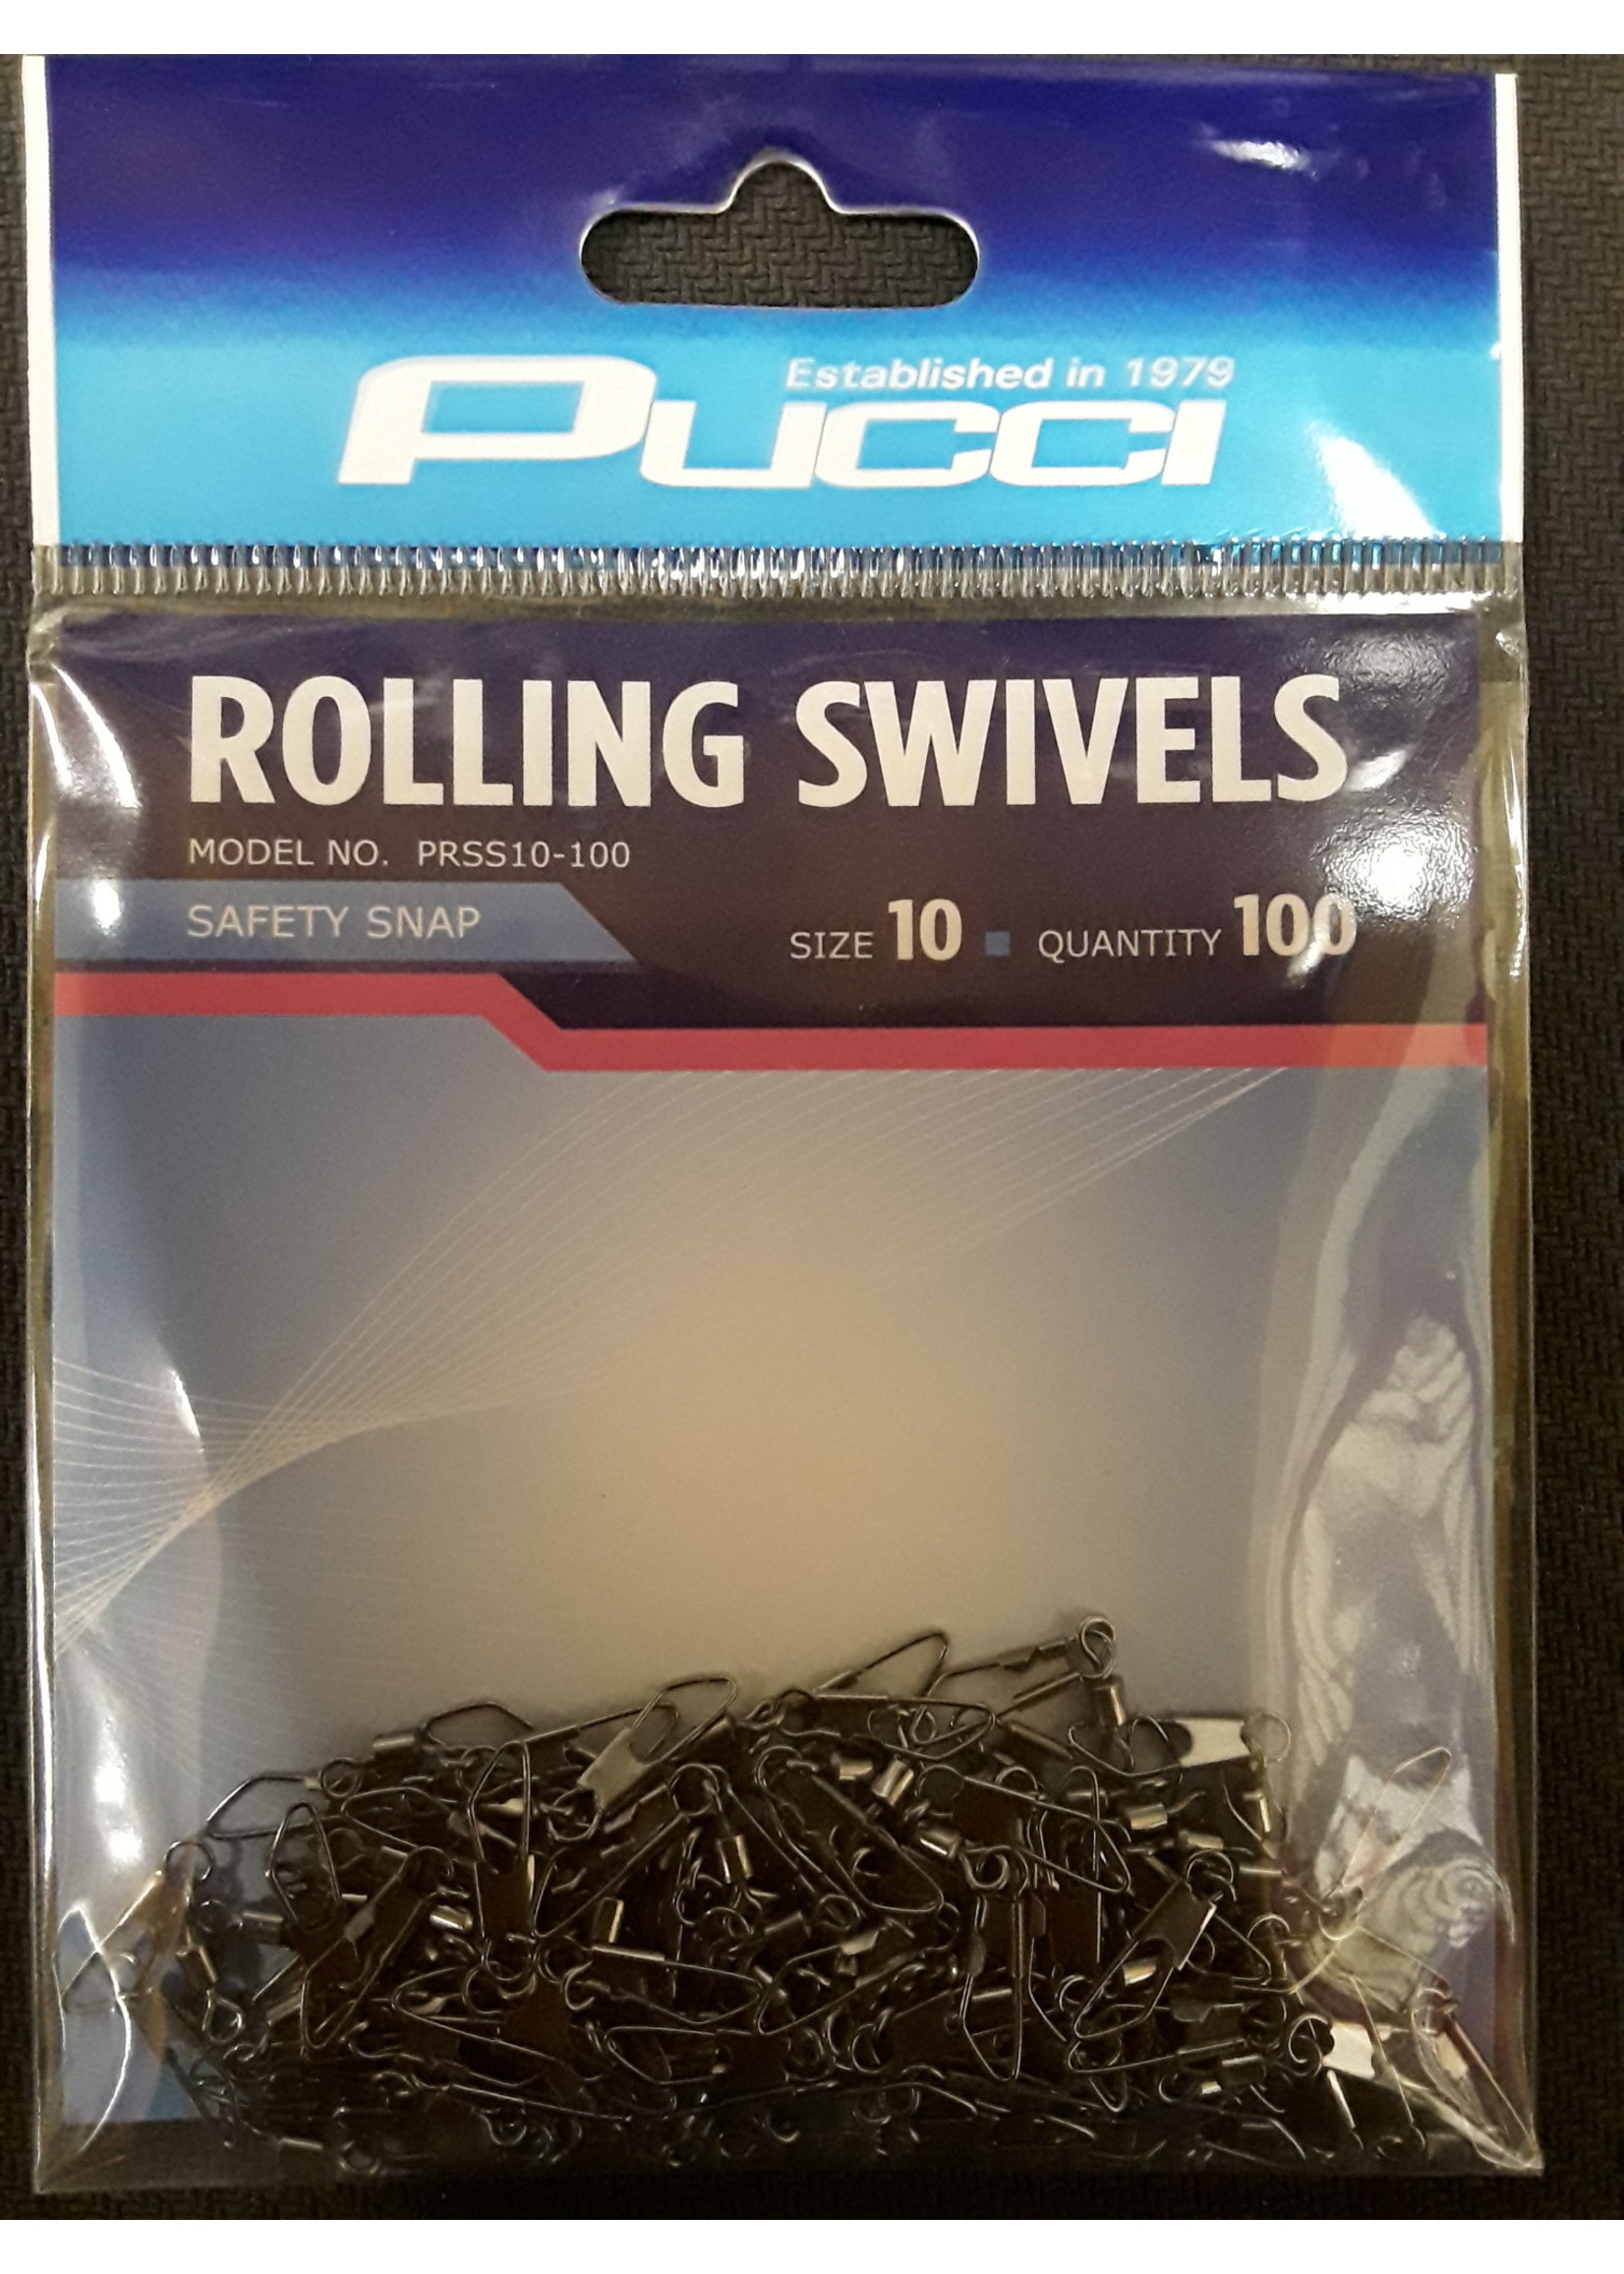 P-LINE P-Line SWIVELS ROLLING #10 WITH SAFET